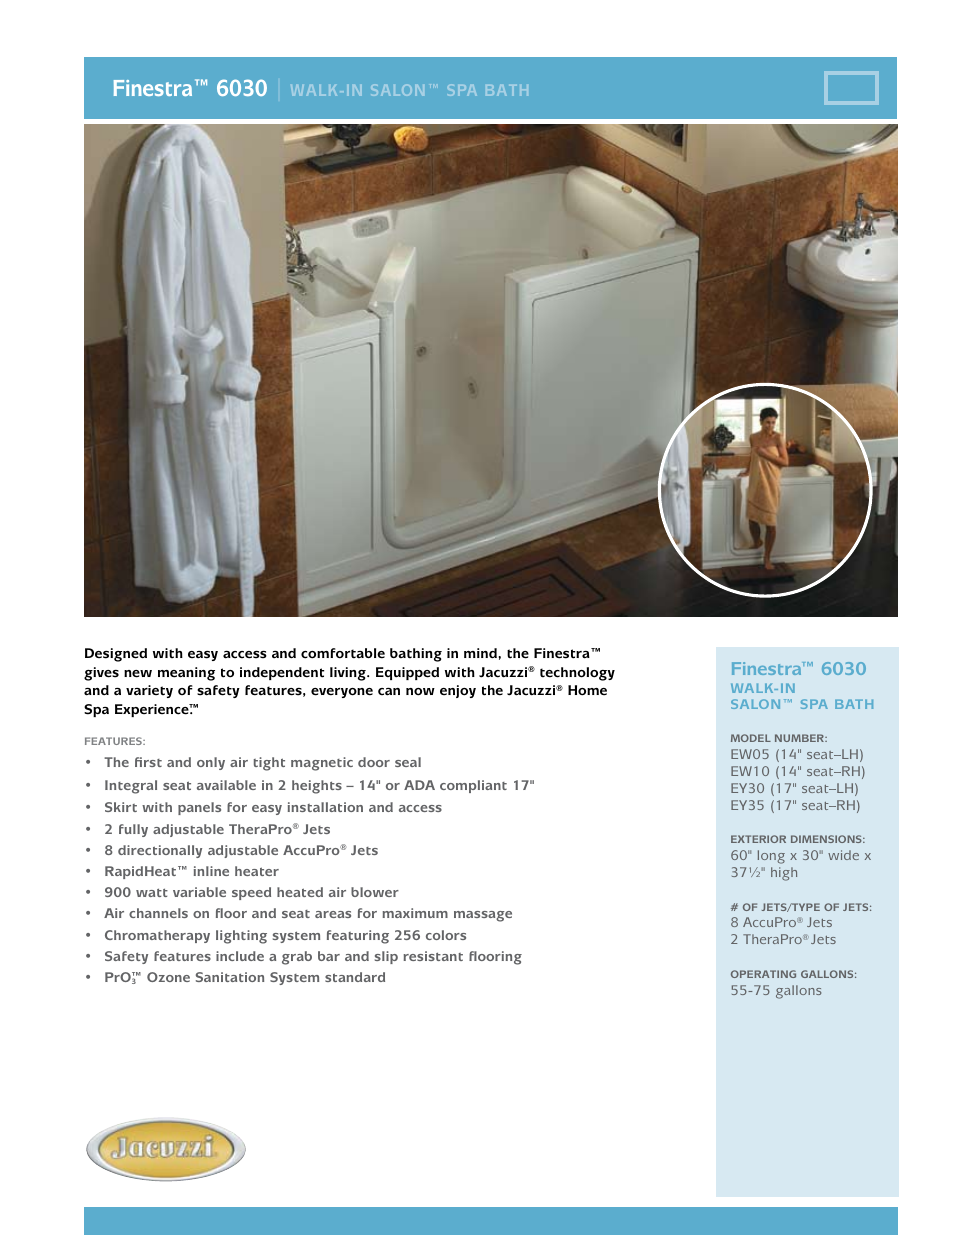 Jacuzzi Finestra Ew05 User Manual 2 Pages Also For